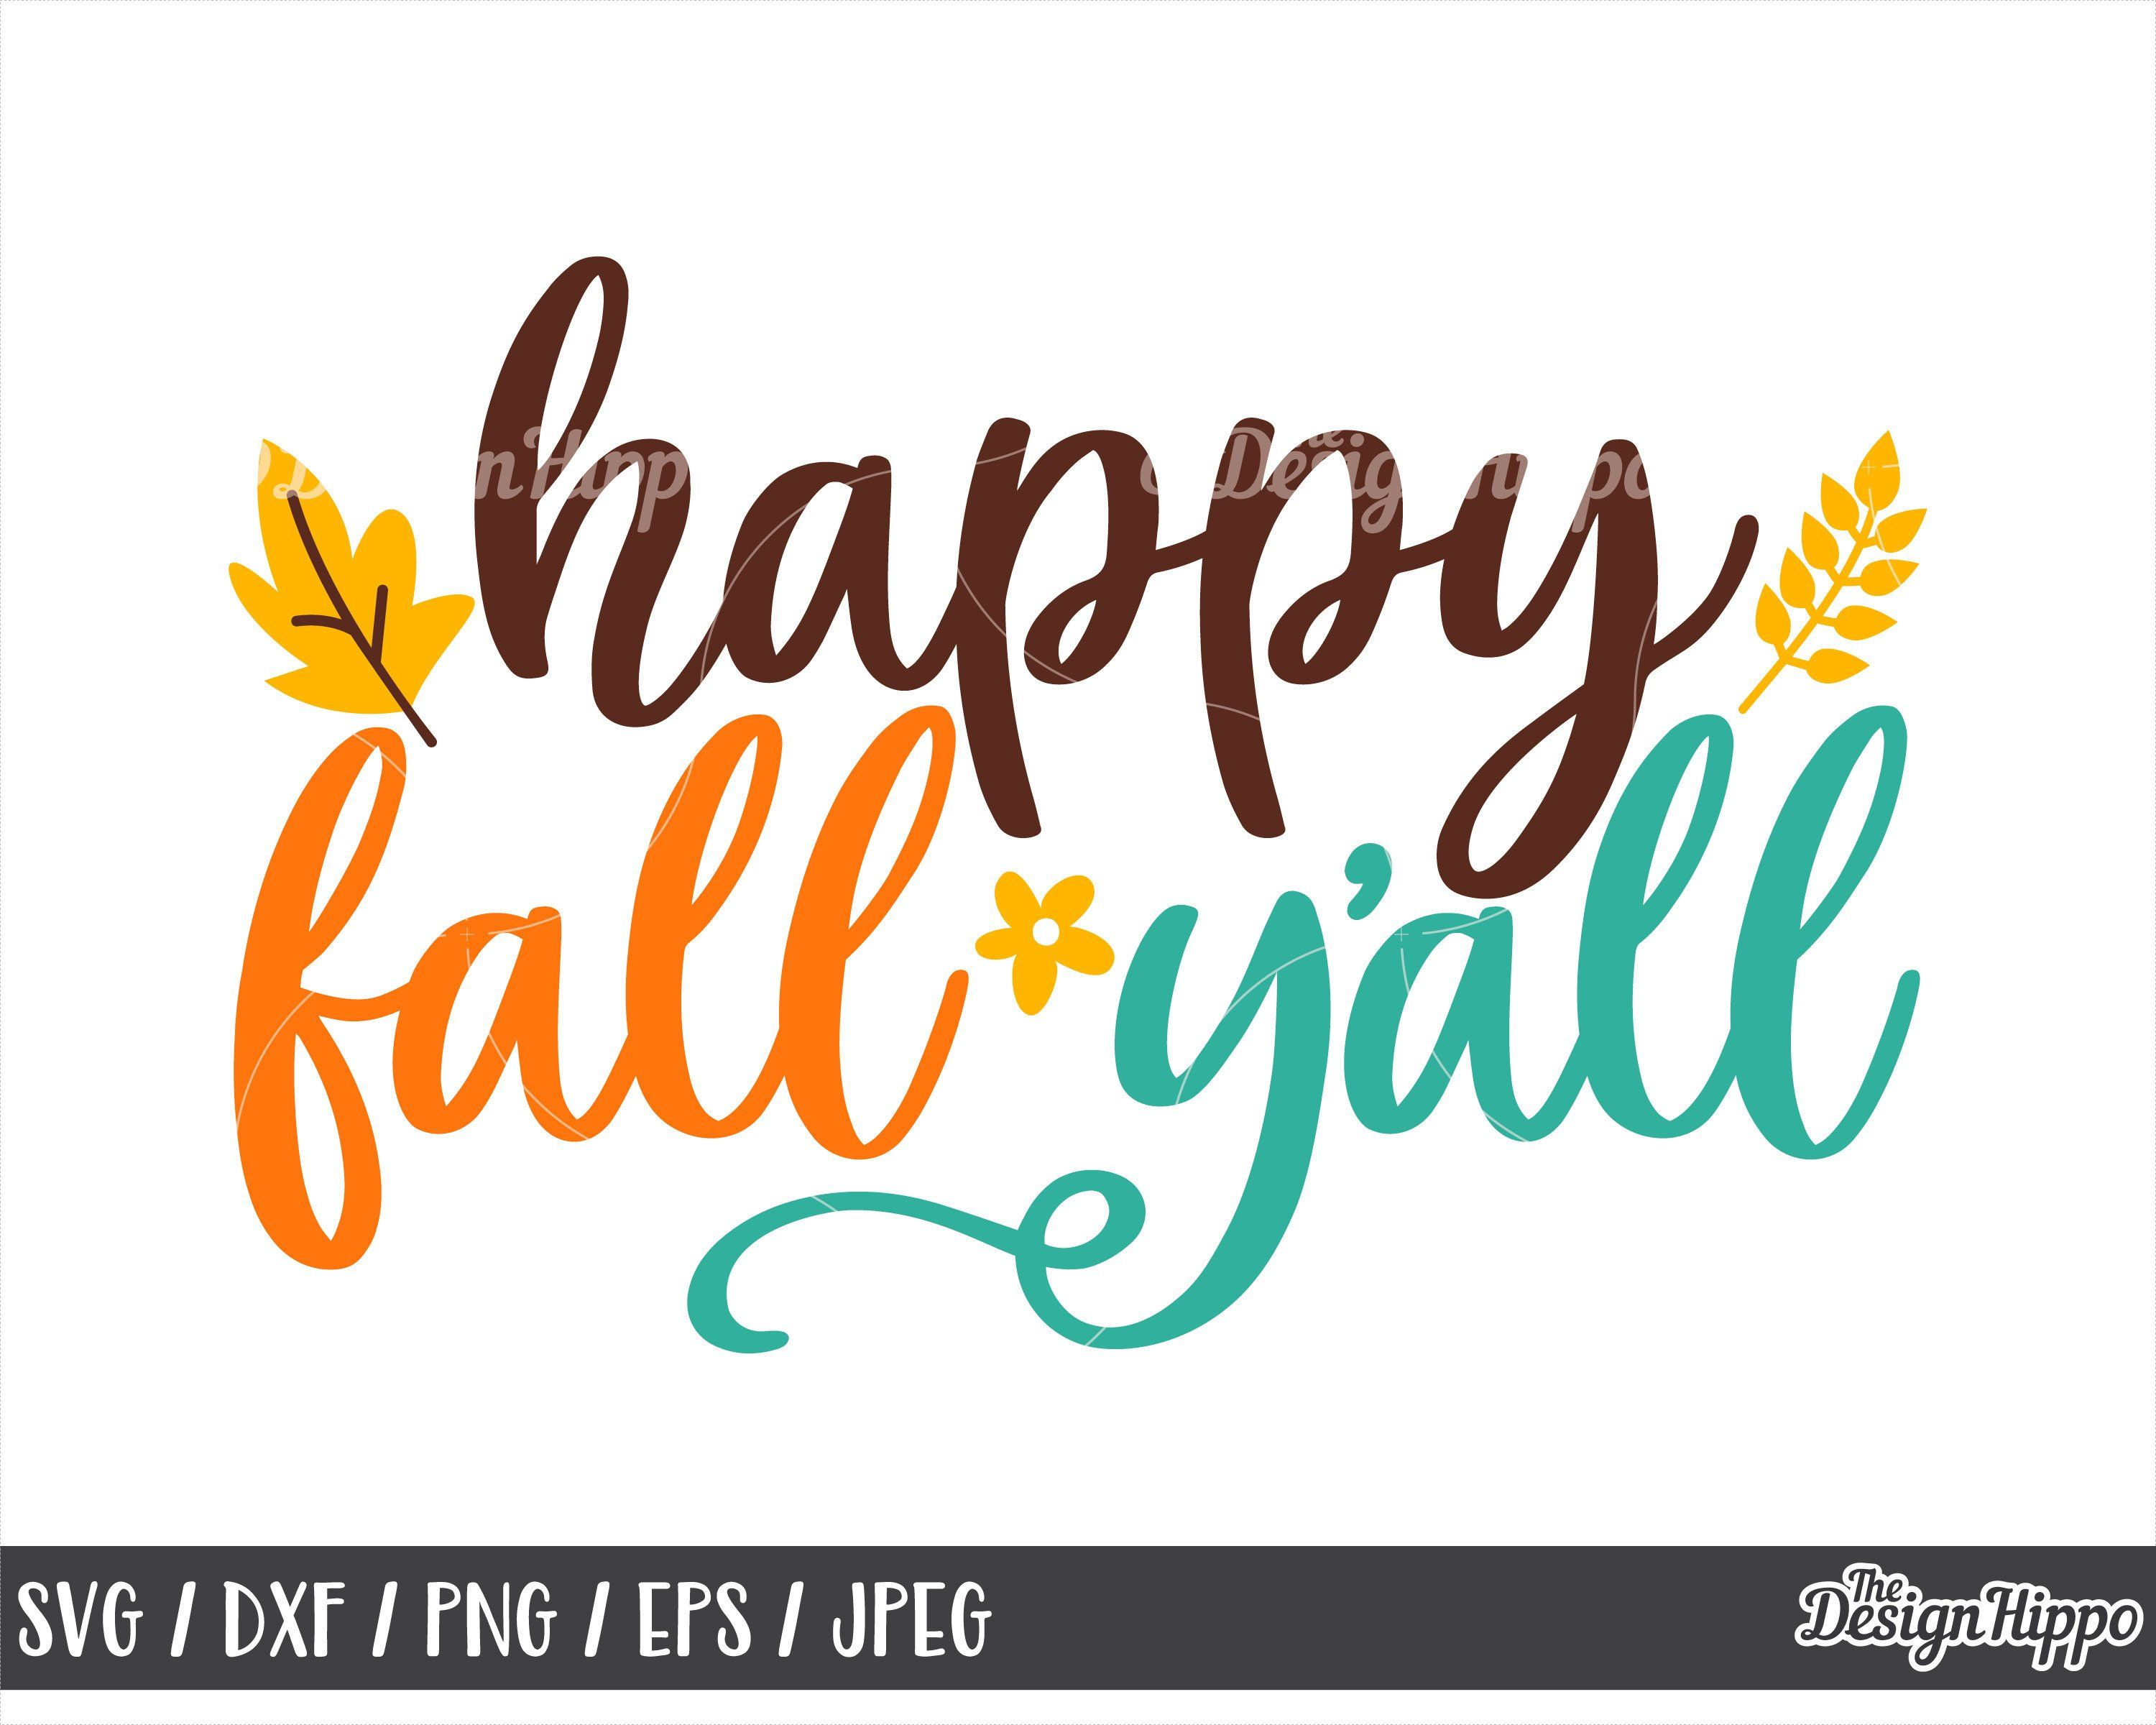 Fall svg, Happy fall yall svg, Happy fall svg, Fall yall